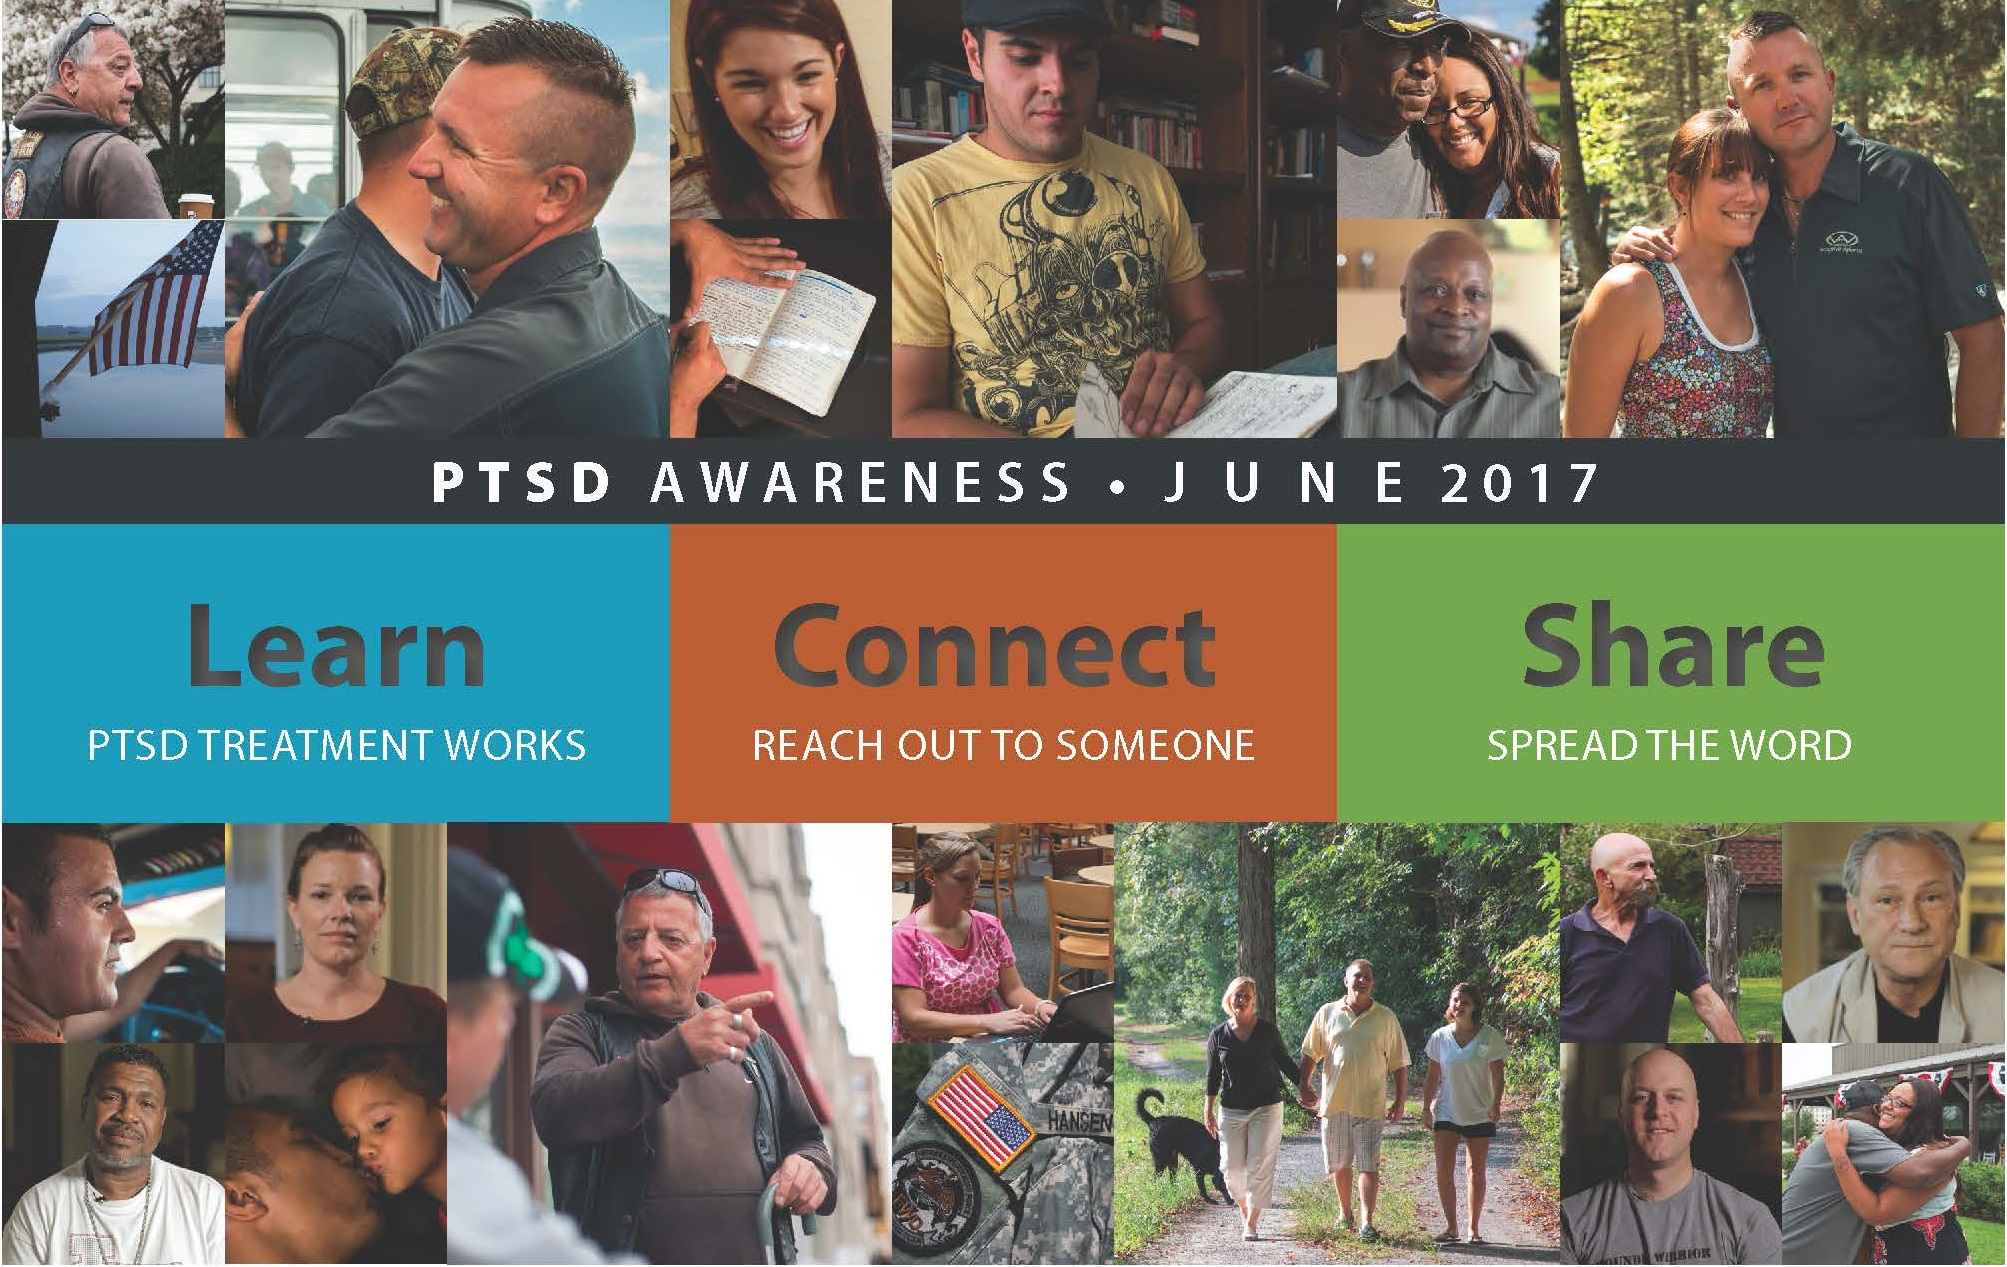 PTSD Awareness Month. Learn. Connect. Share.